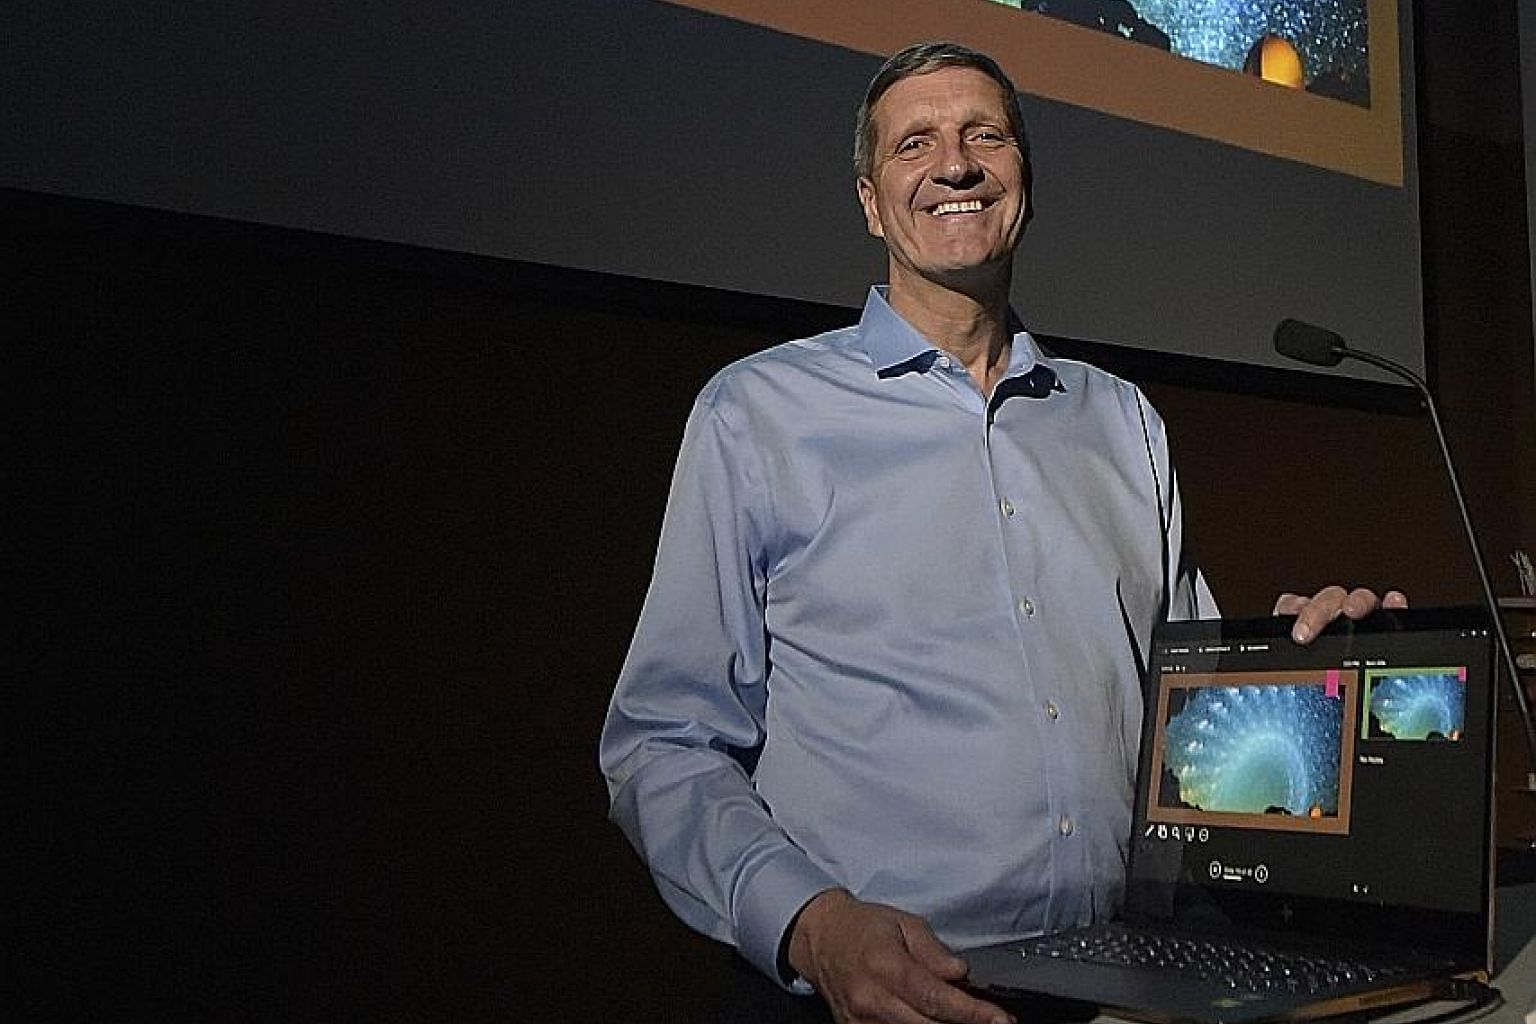 Dr Christian Sasse, whose composite photo of the Milky Way (projected on screen) went viral on social media this year, was in Singapore recently to speak at Visual SG, a visualisation festival.